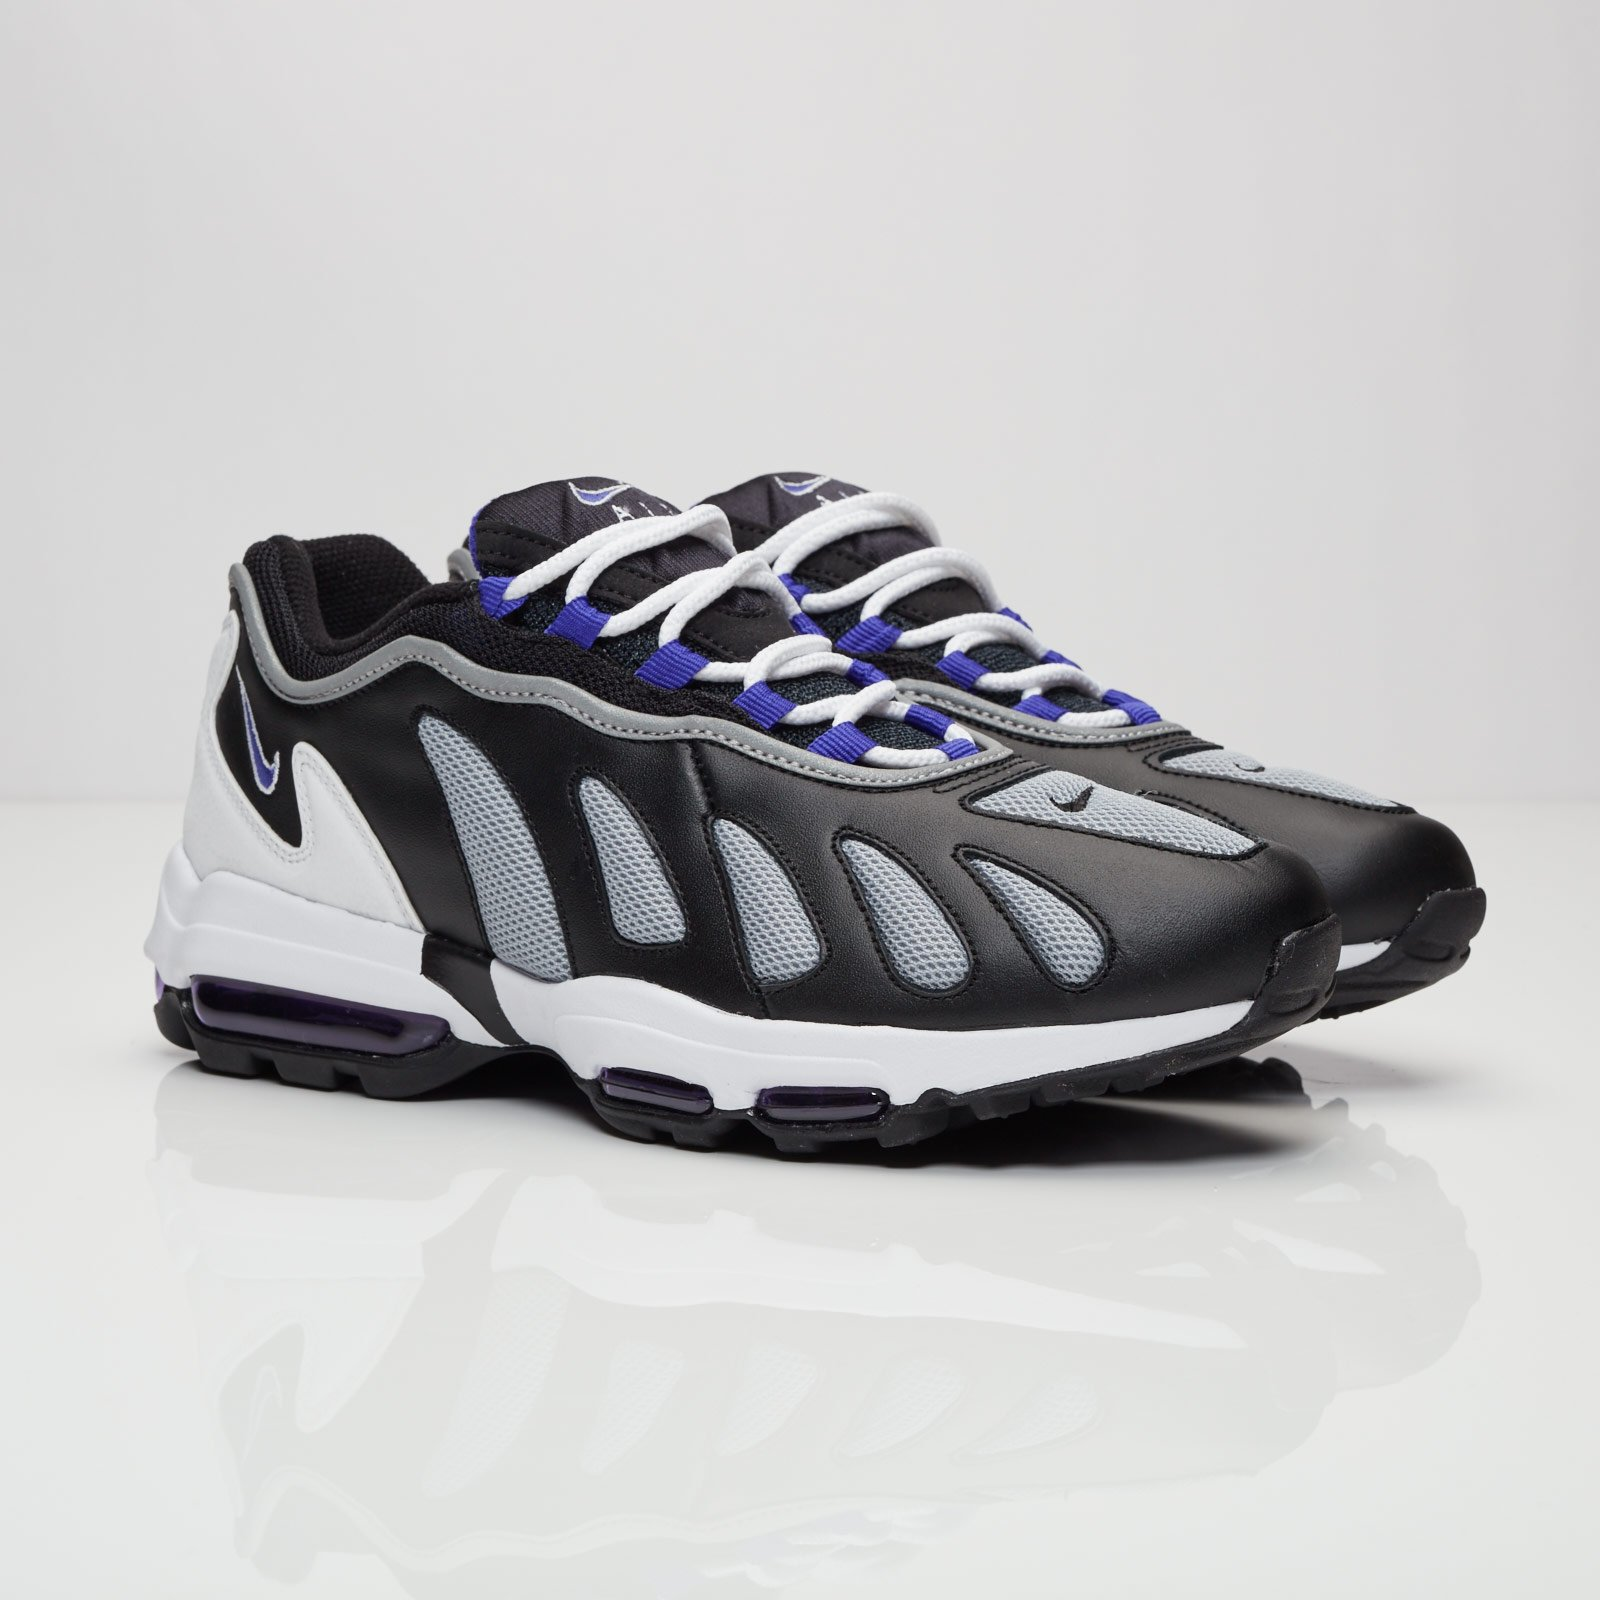 86dd9a1239 Nike Air Max 96 XX - 870165-001 - Sneakersnstuff | sneakers ...